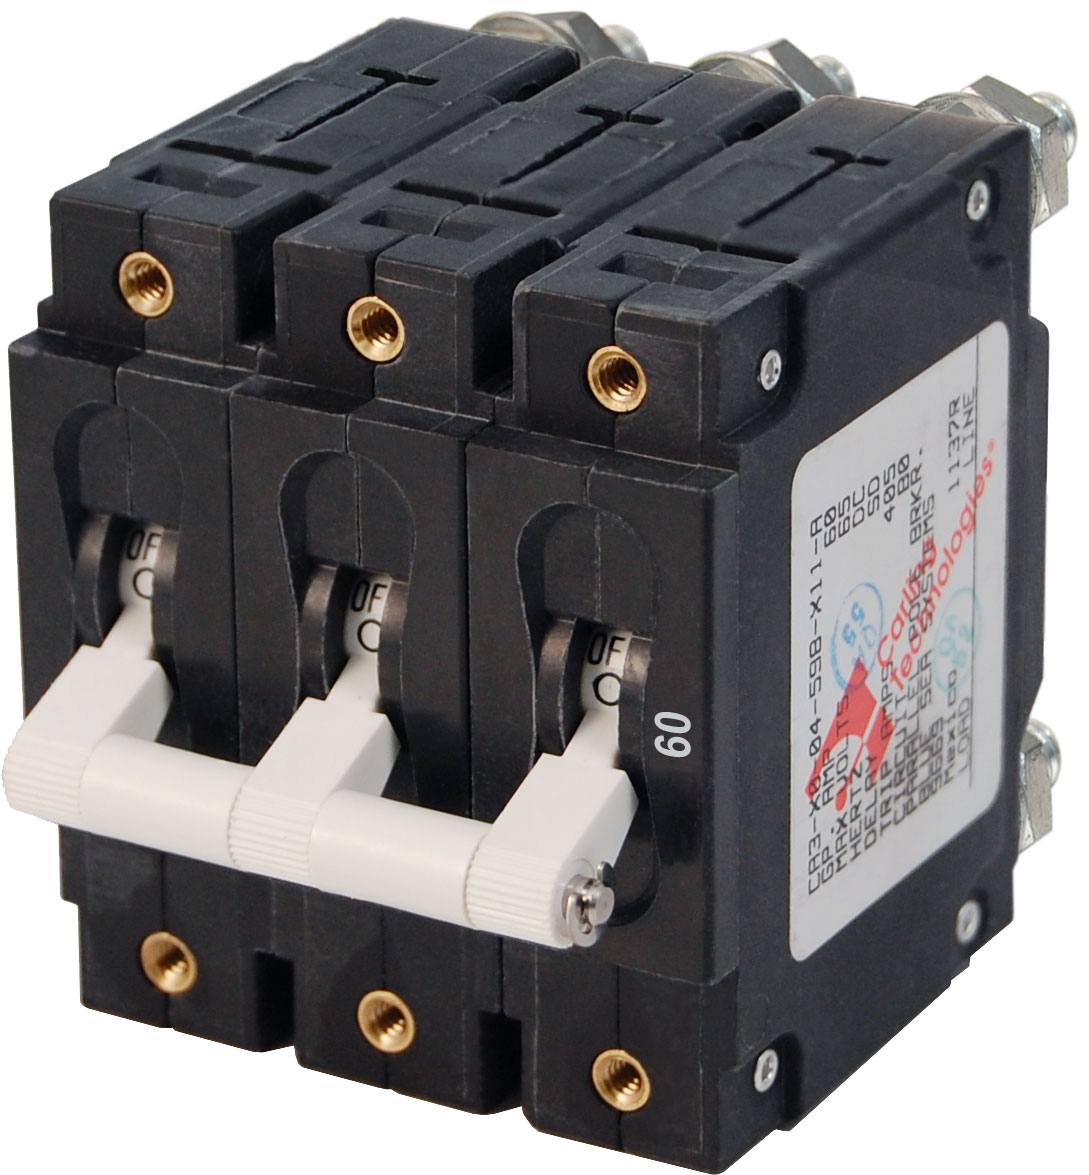 C-Series White Toggle Circuit Breaker - Triple Pole 60 Amp - Blue ...